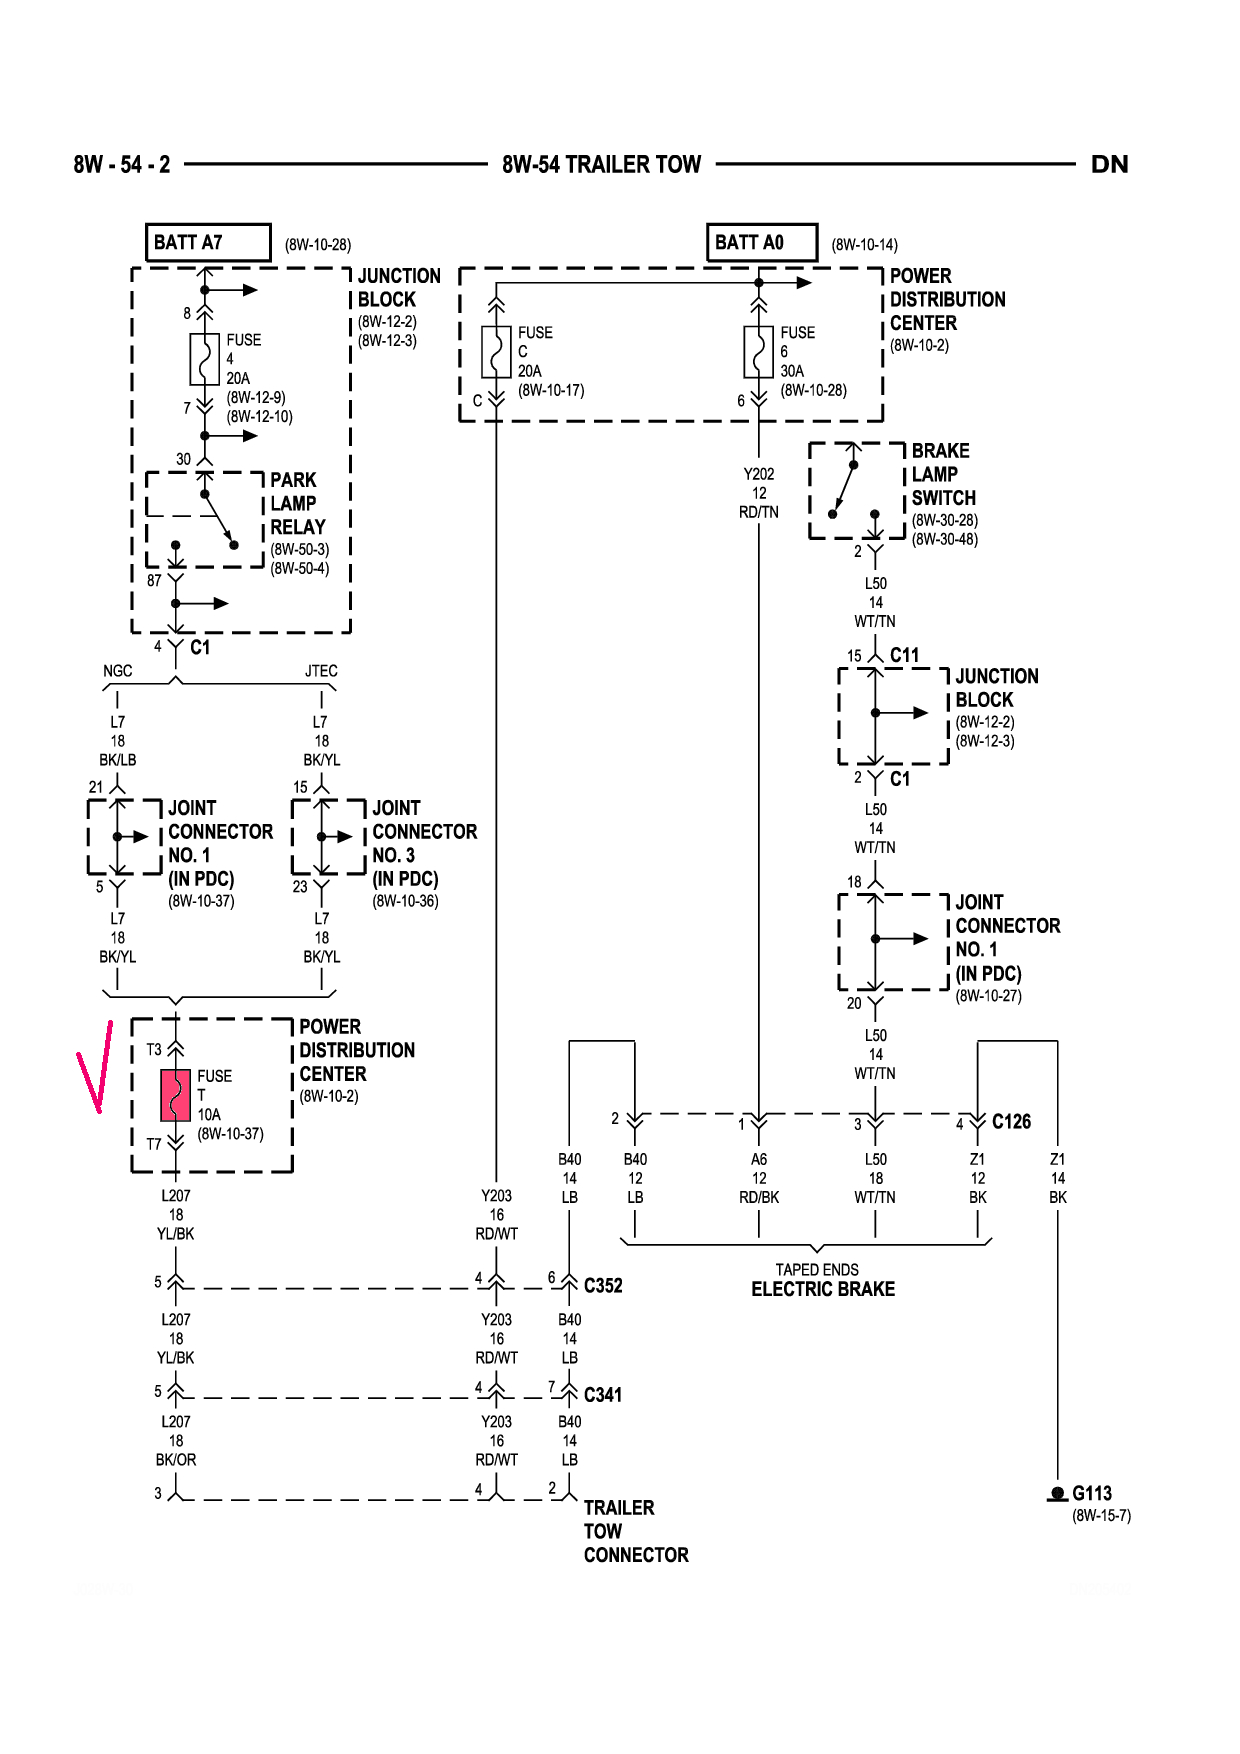 dodge ram 1500 trailer wiring schematic wiring diagram2002 dodge ram 1500 trailer wiring harness box wiring diagram 1998 dodge ram 3500 trailer wiring diagram dodge ram 1500 trailer wiring